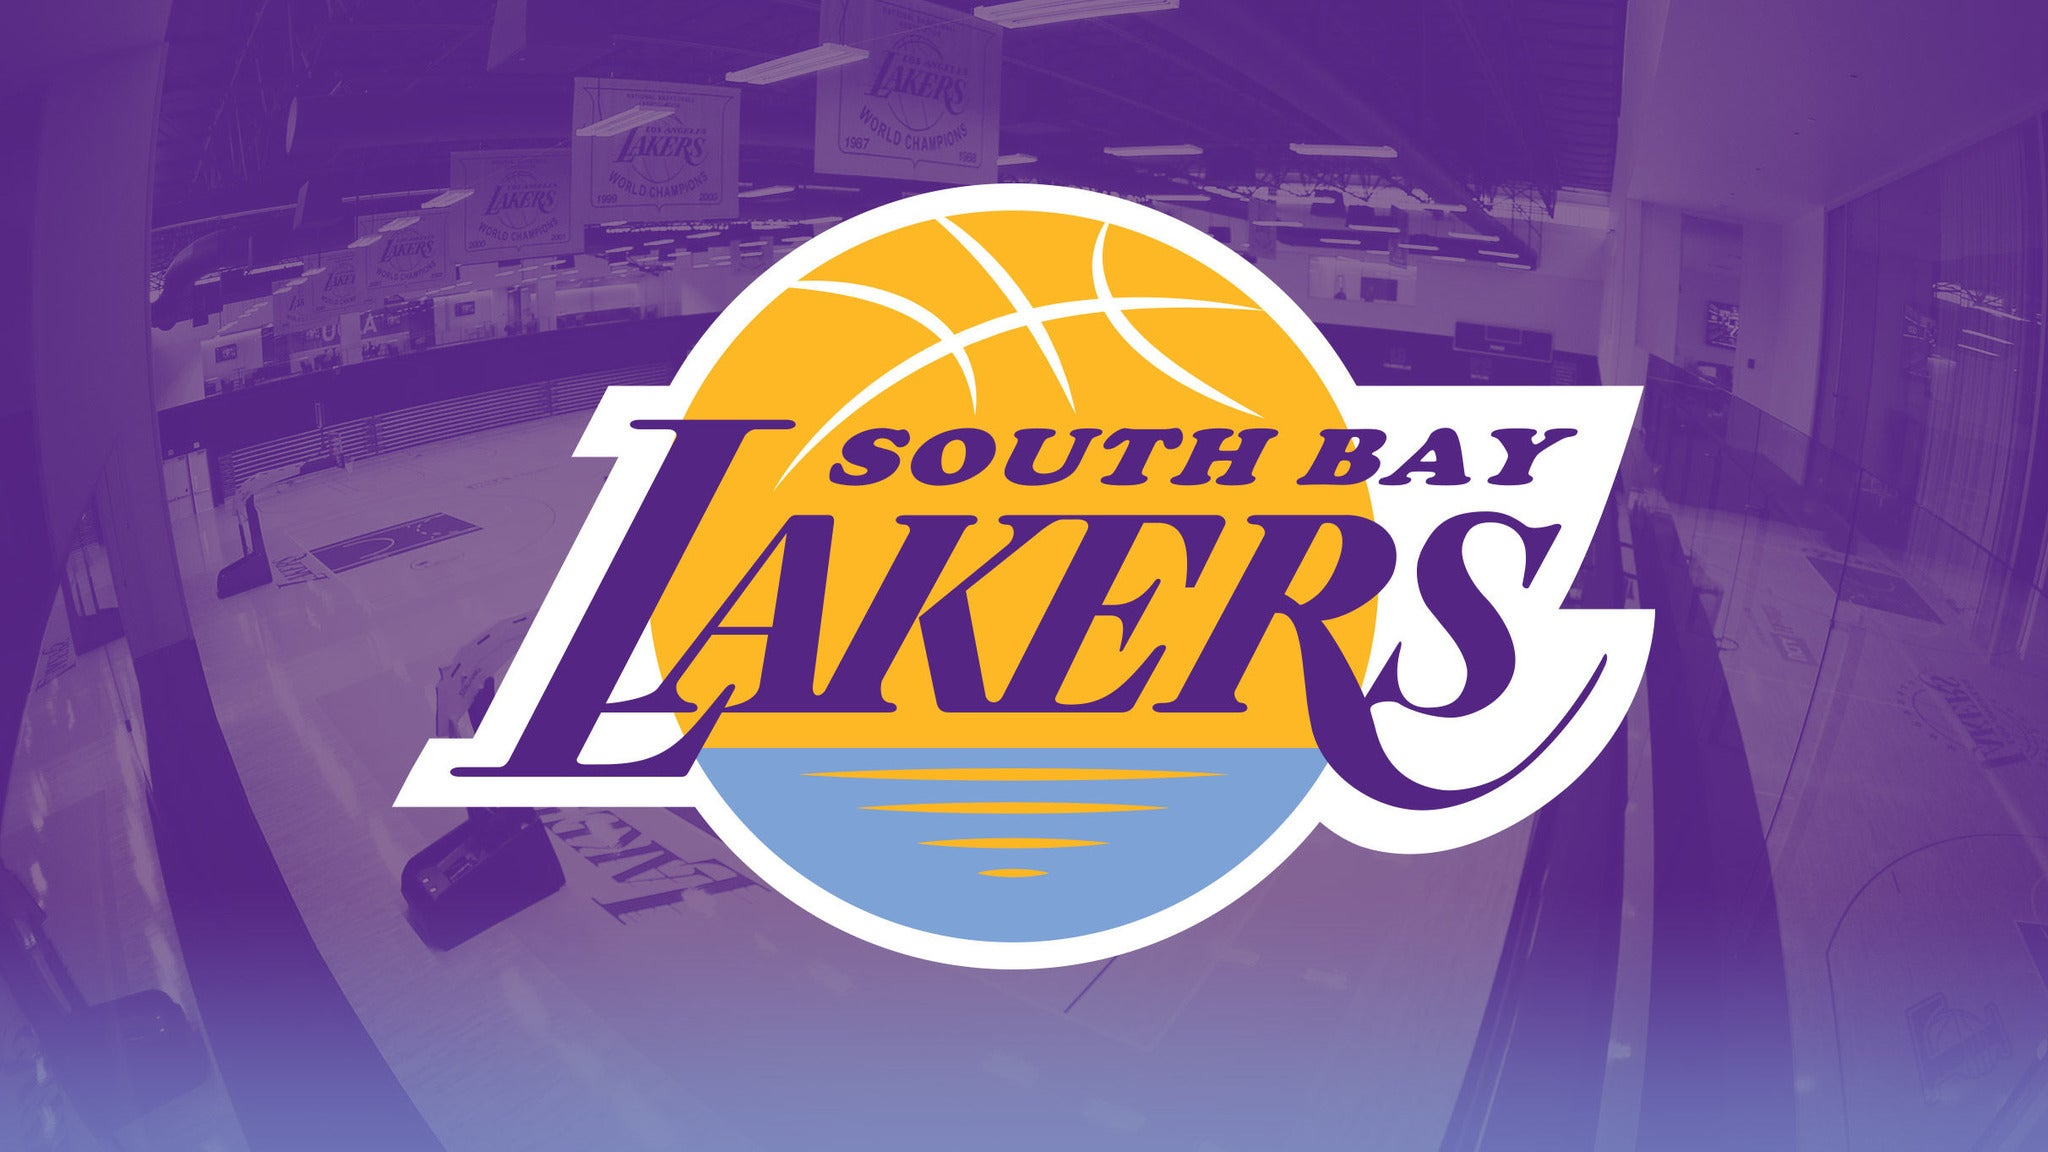 South Bay Lakers vs. Windy City Bulls